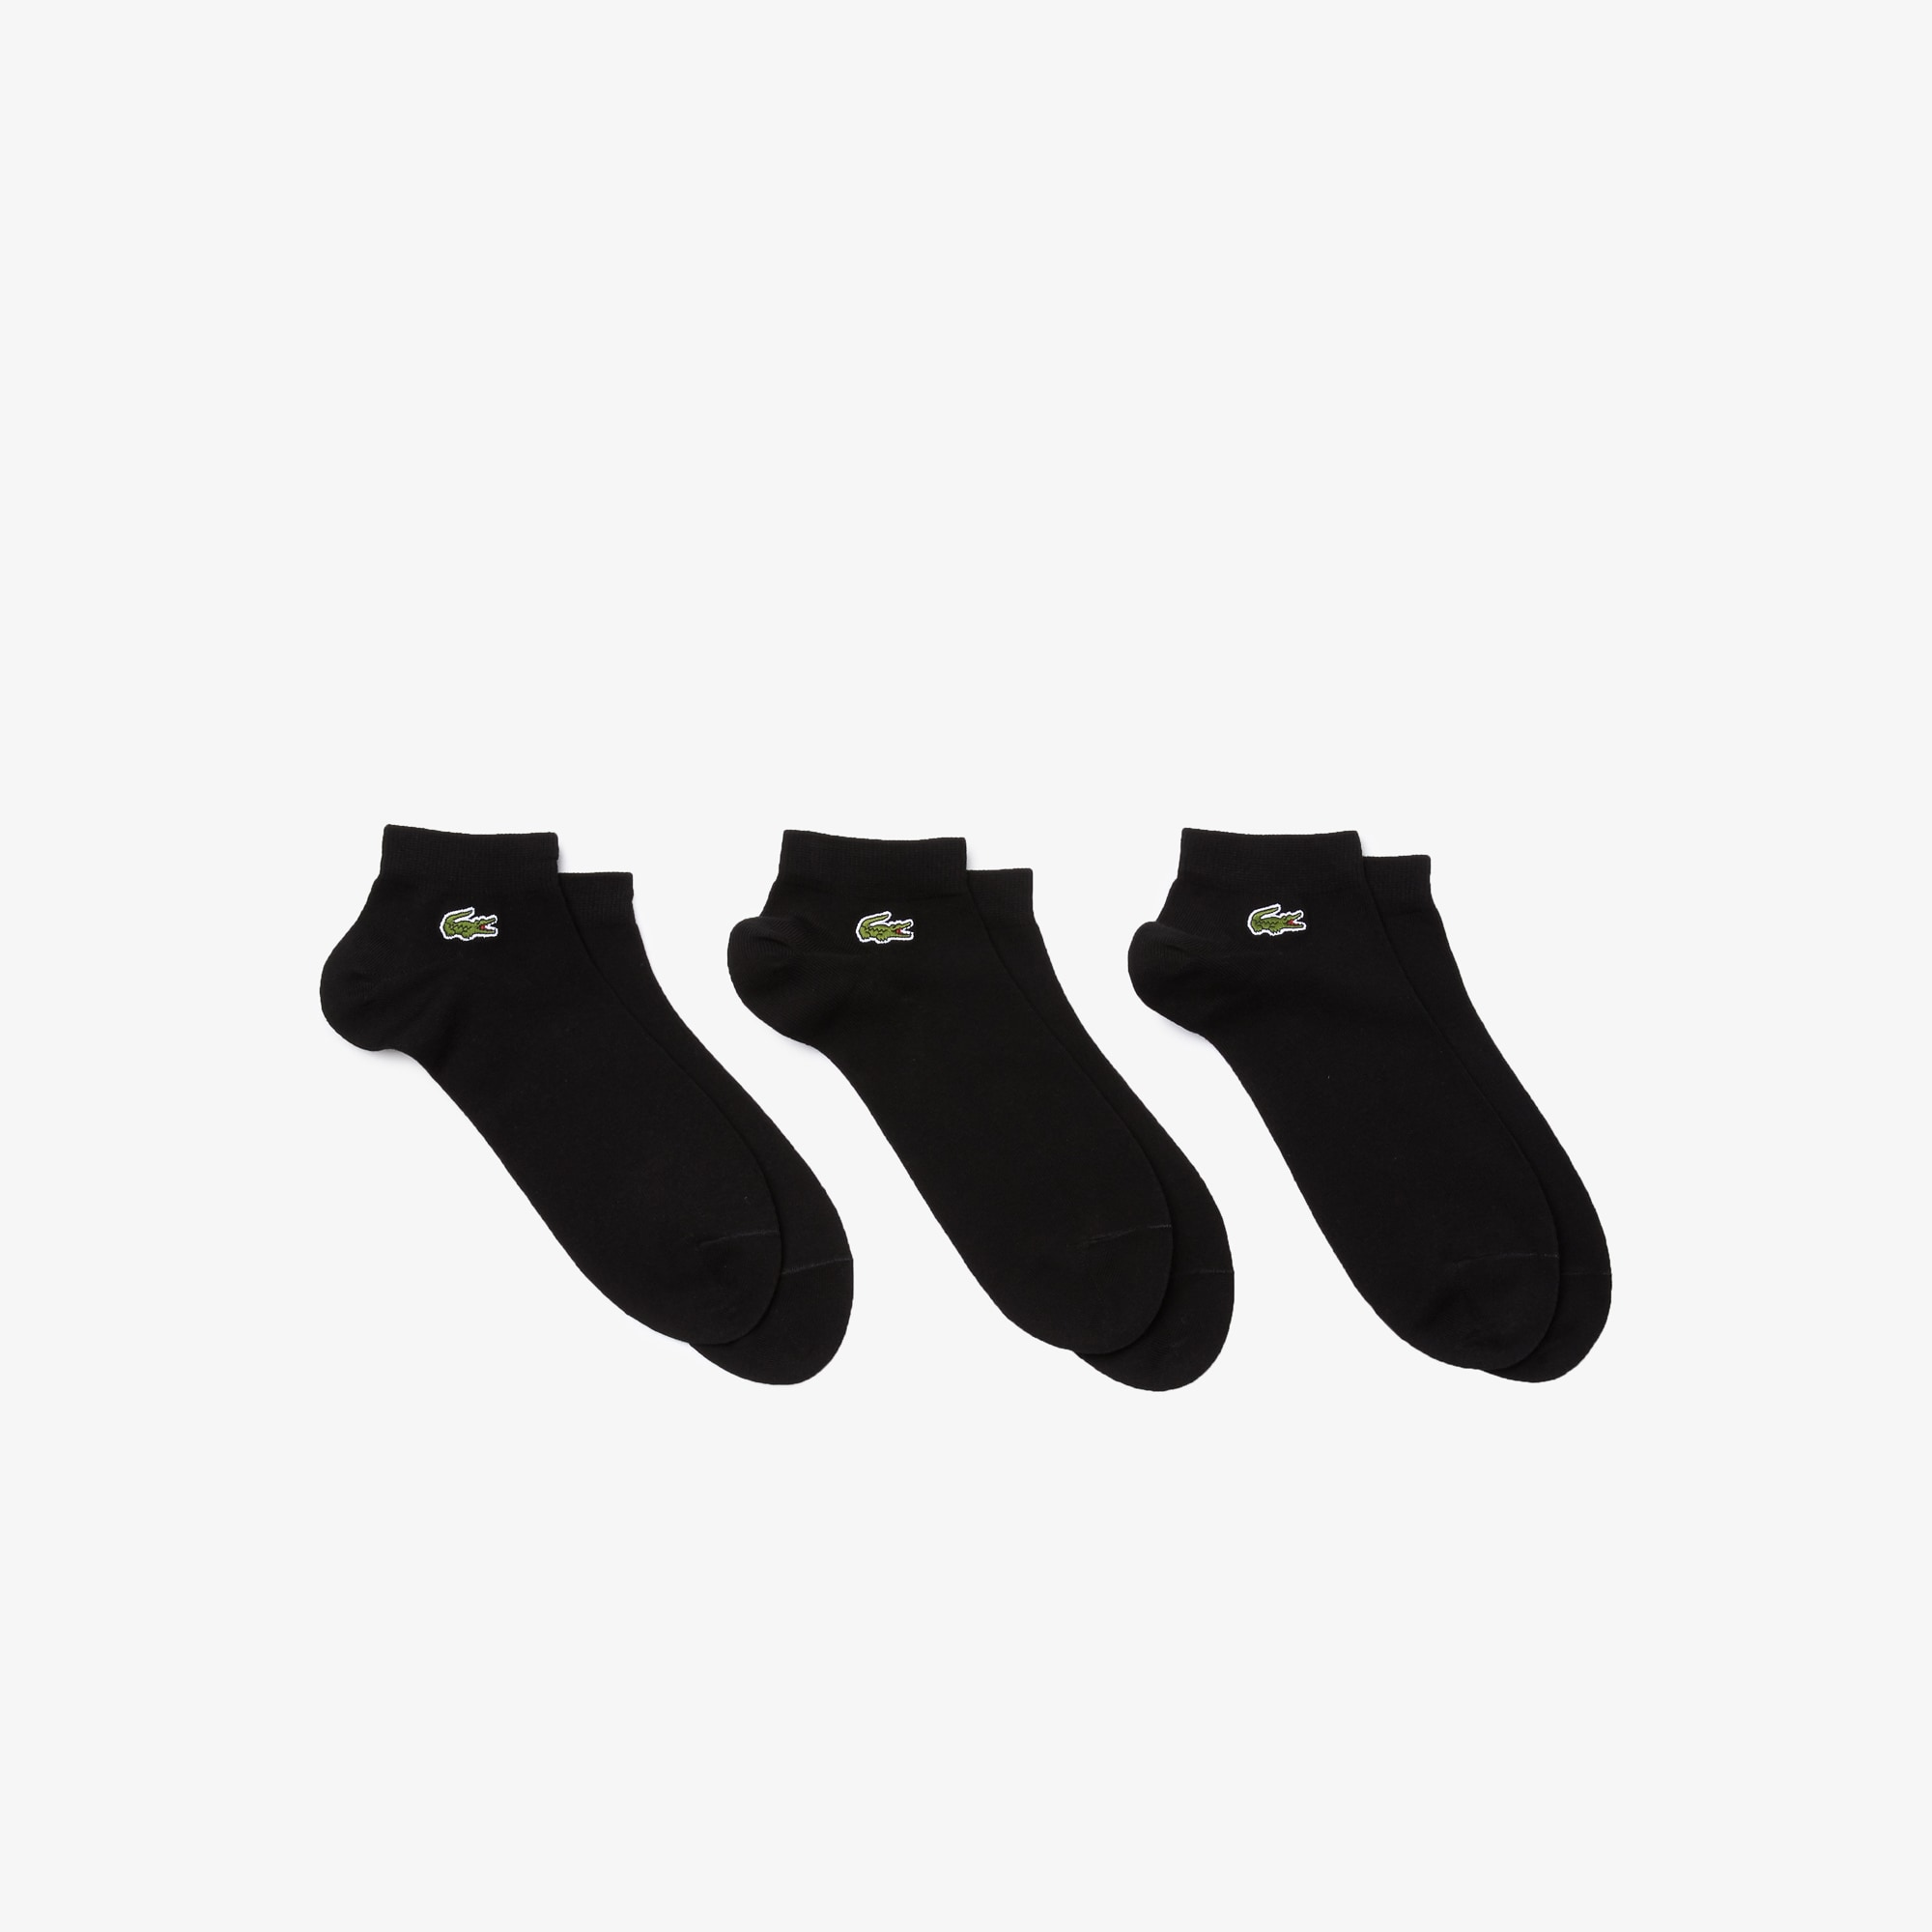 Men's Three-pack of SPORT low-cut socks in solid jersey